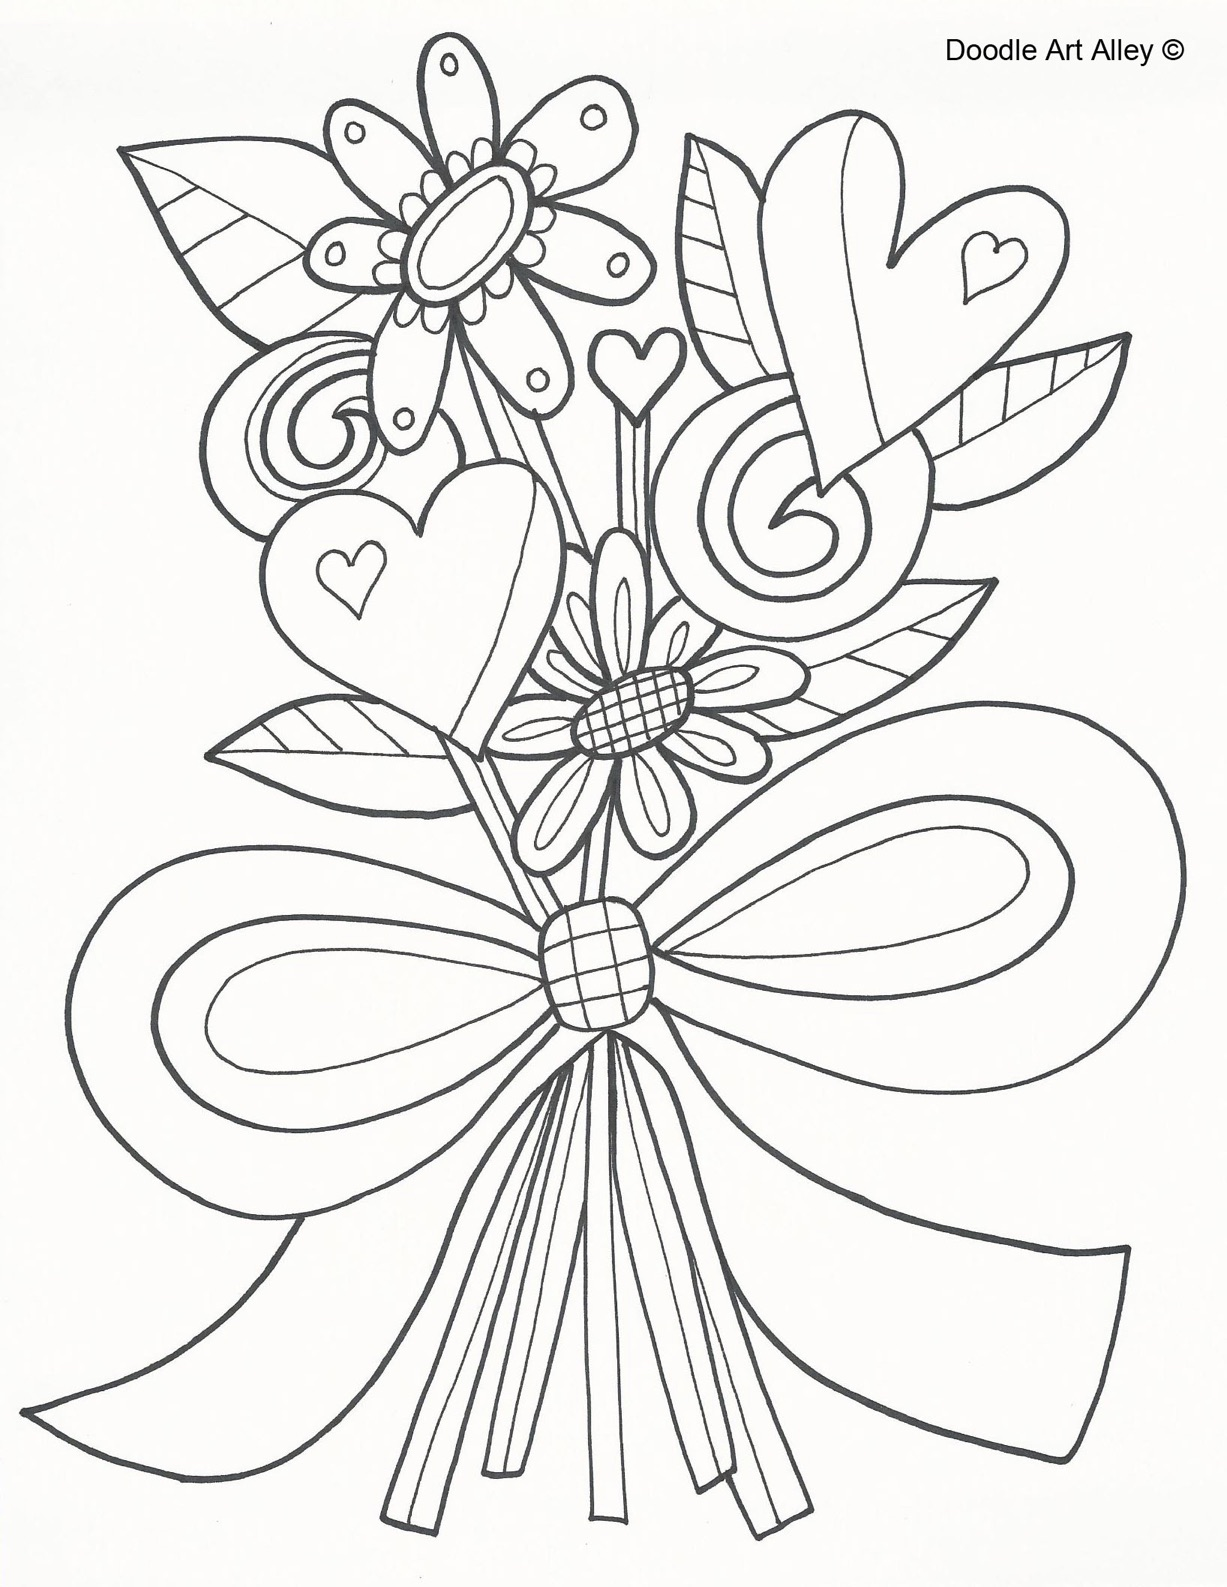 FLowers Mother's Day Coloring Page | Little Village Kids